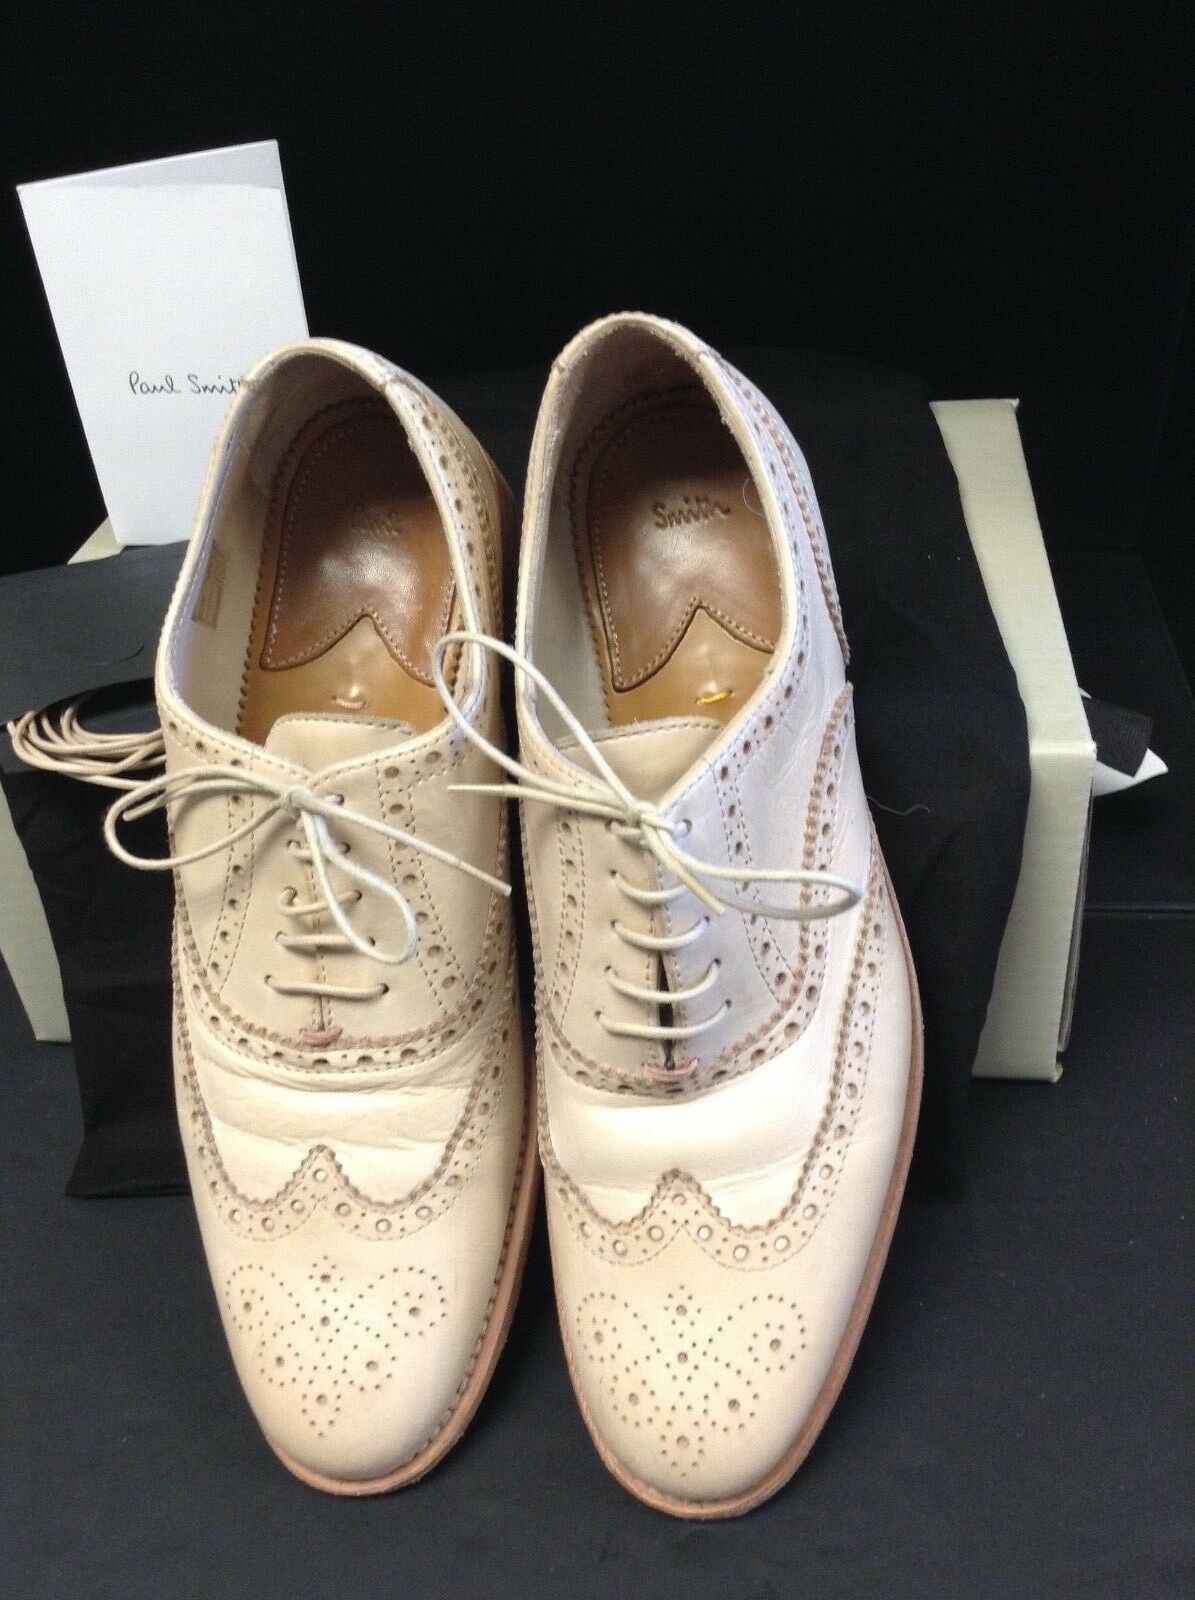 Paul Smith Pink Leather Lace up Brogues